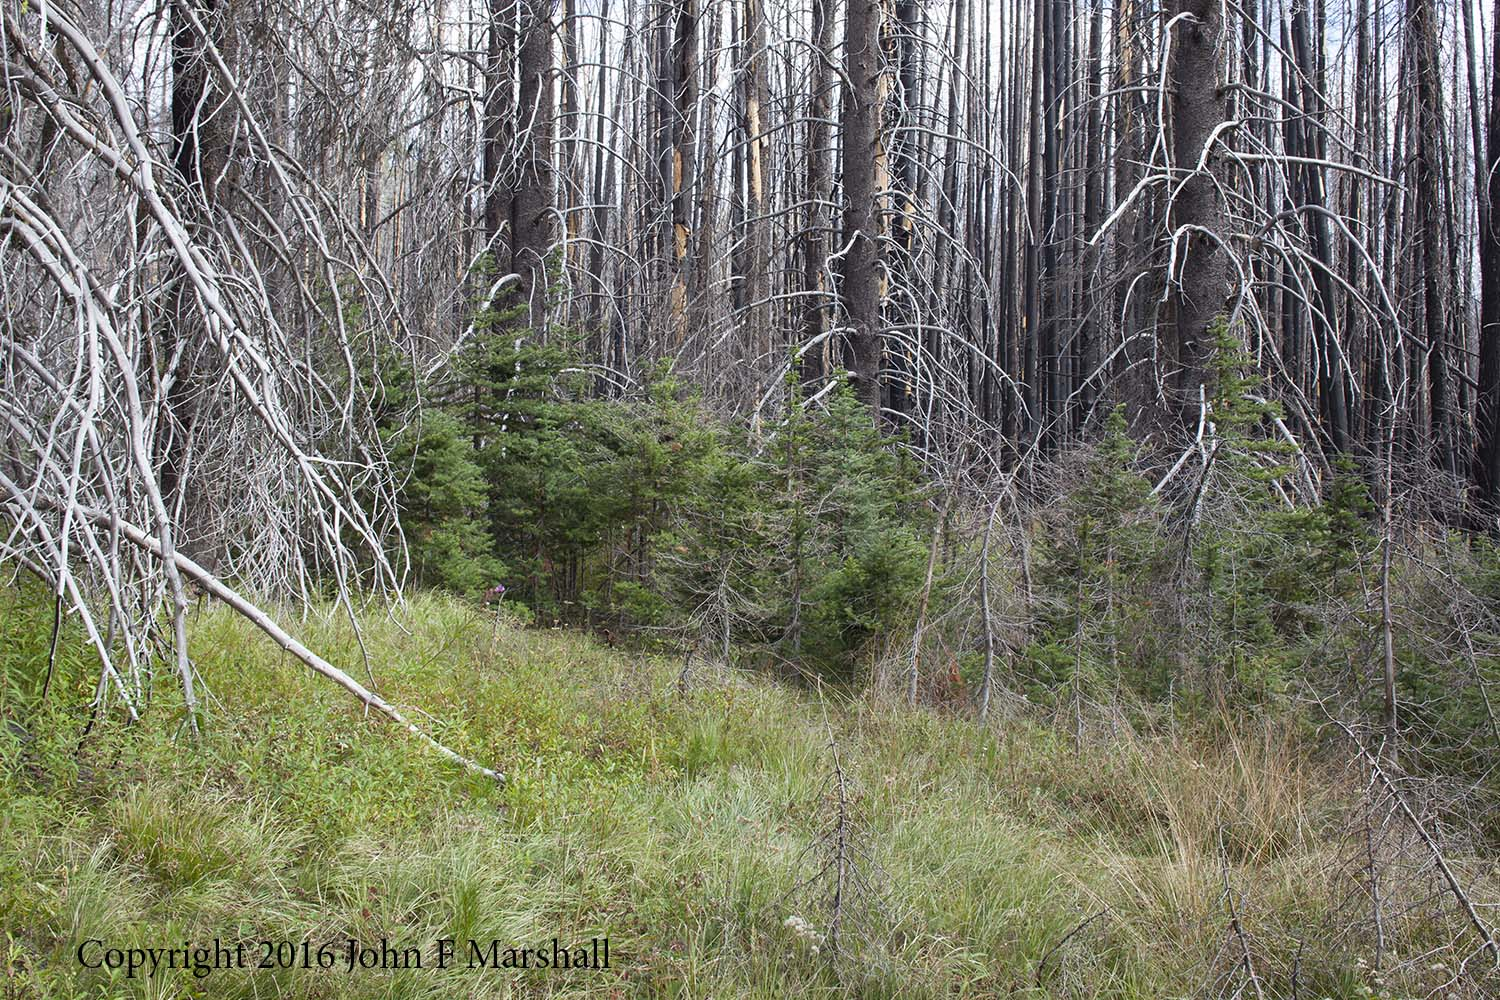 NNMW-7-1  September 7, 2016.  The scorched sapling subalpine firs have surprised me with their resilience.